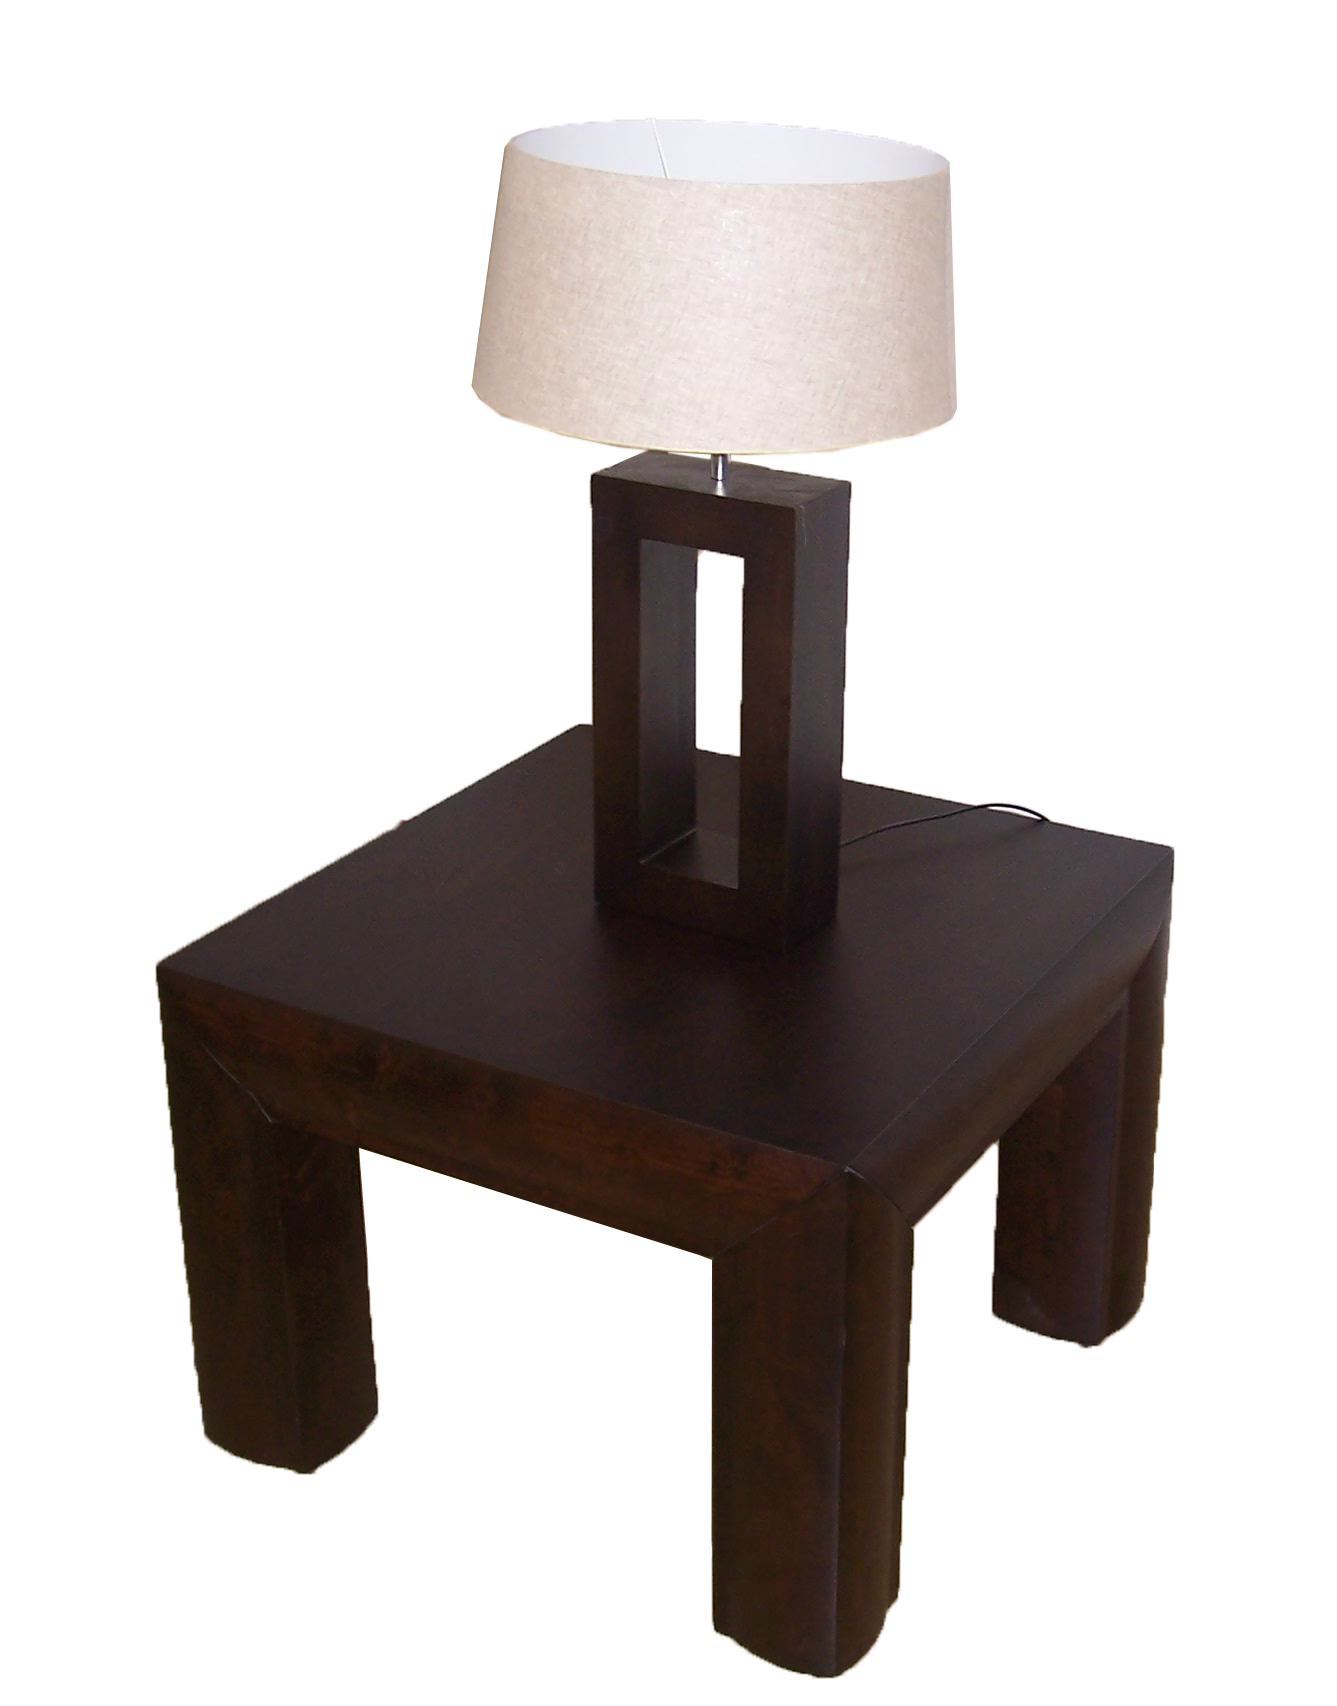 'Global' Lamp Table